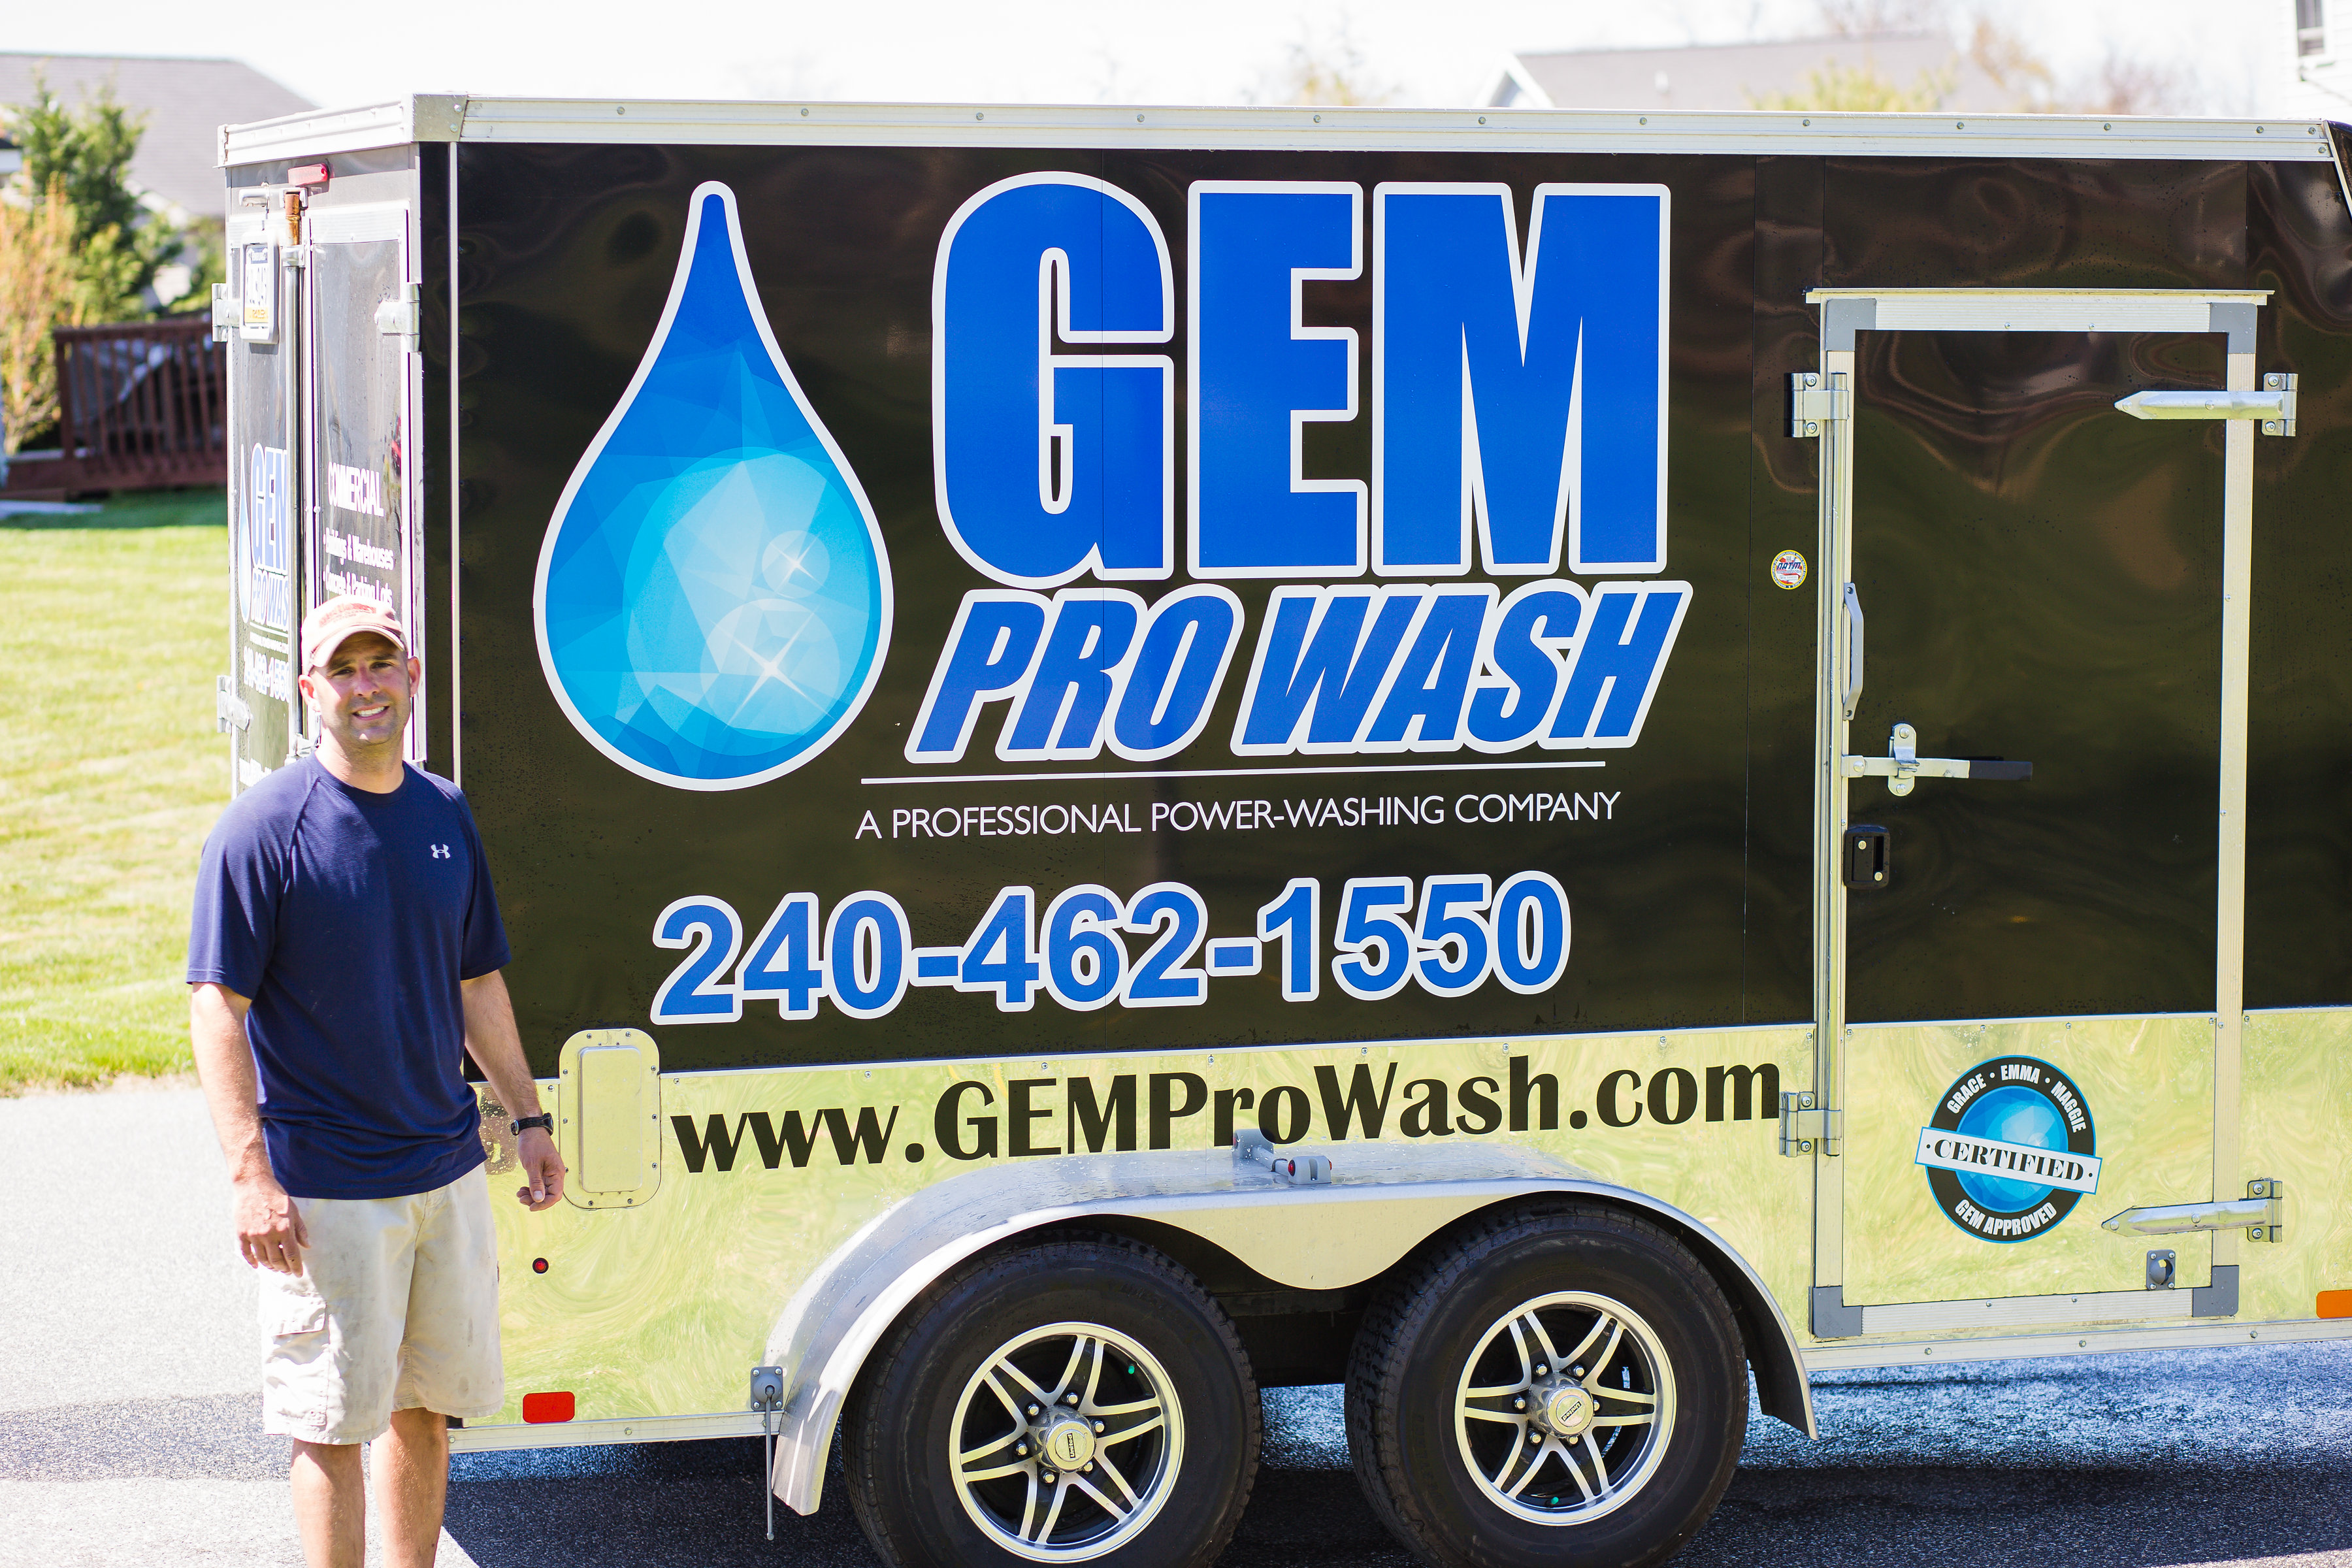 Gem Pro Wash | Sidewalk Cleaning Contractor in Fayetteville PA